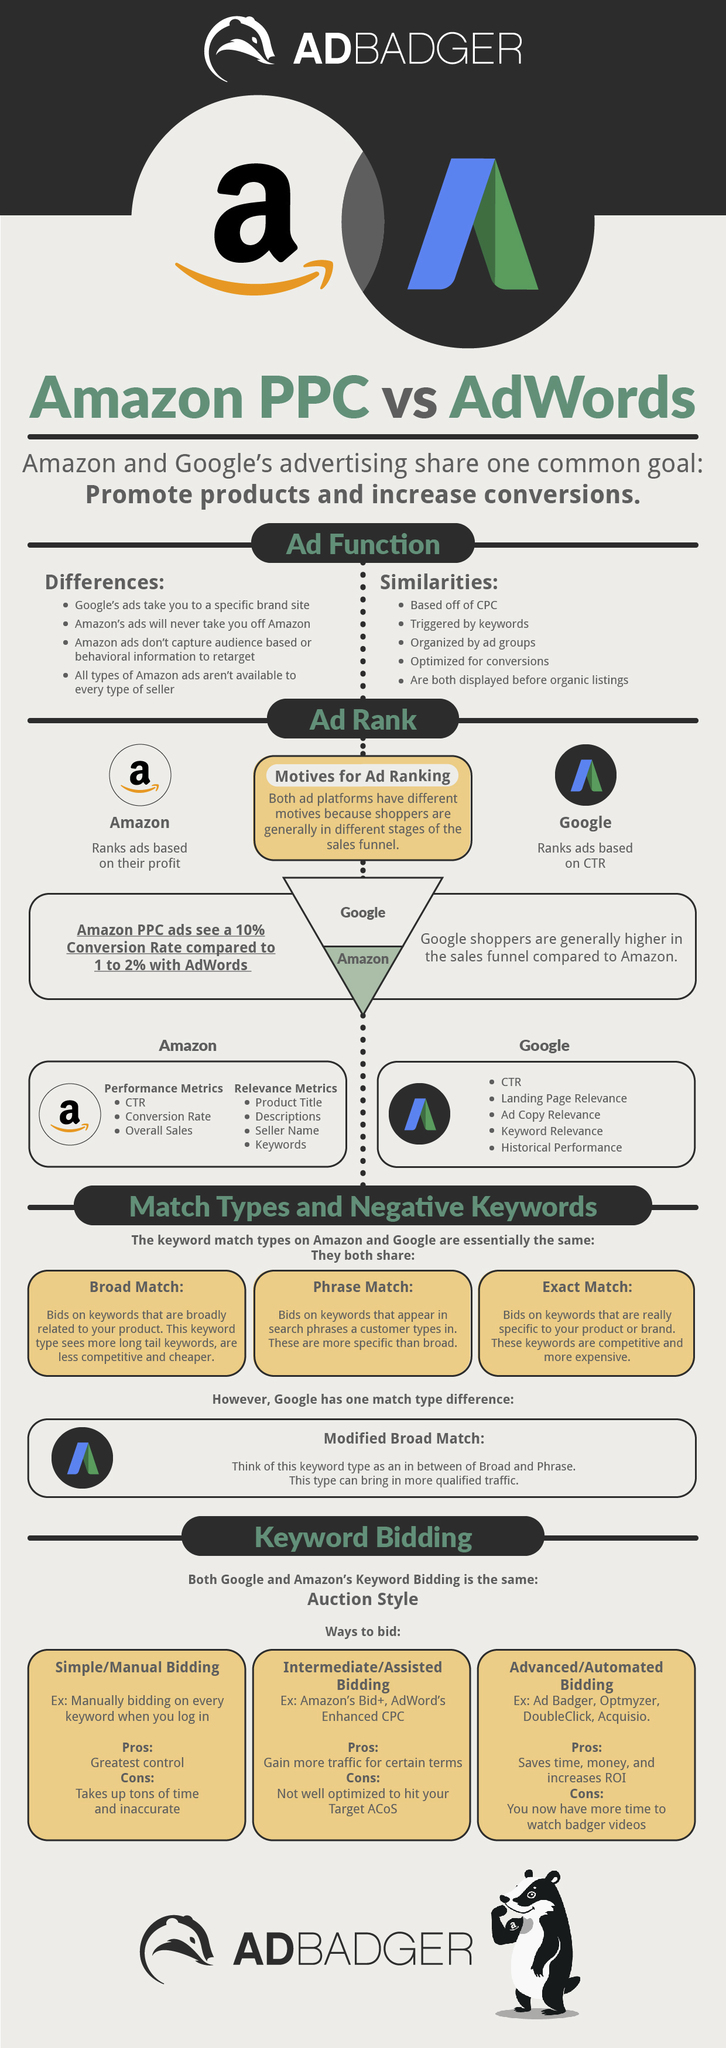 An in-depth infographic explaining the differences and similarities between Amazon PPC and AdWords.